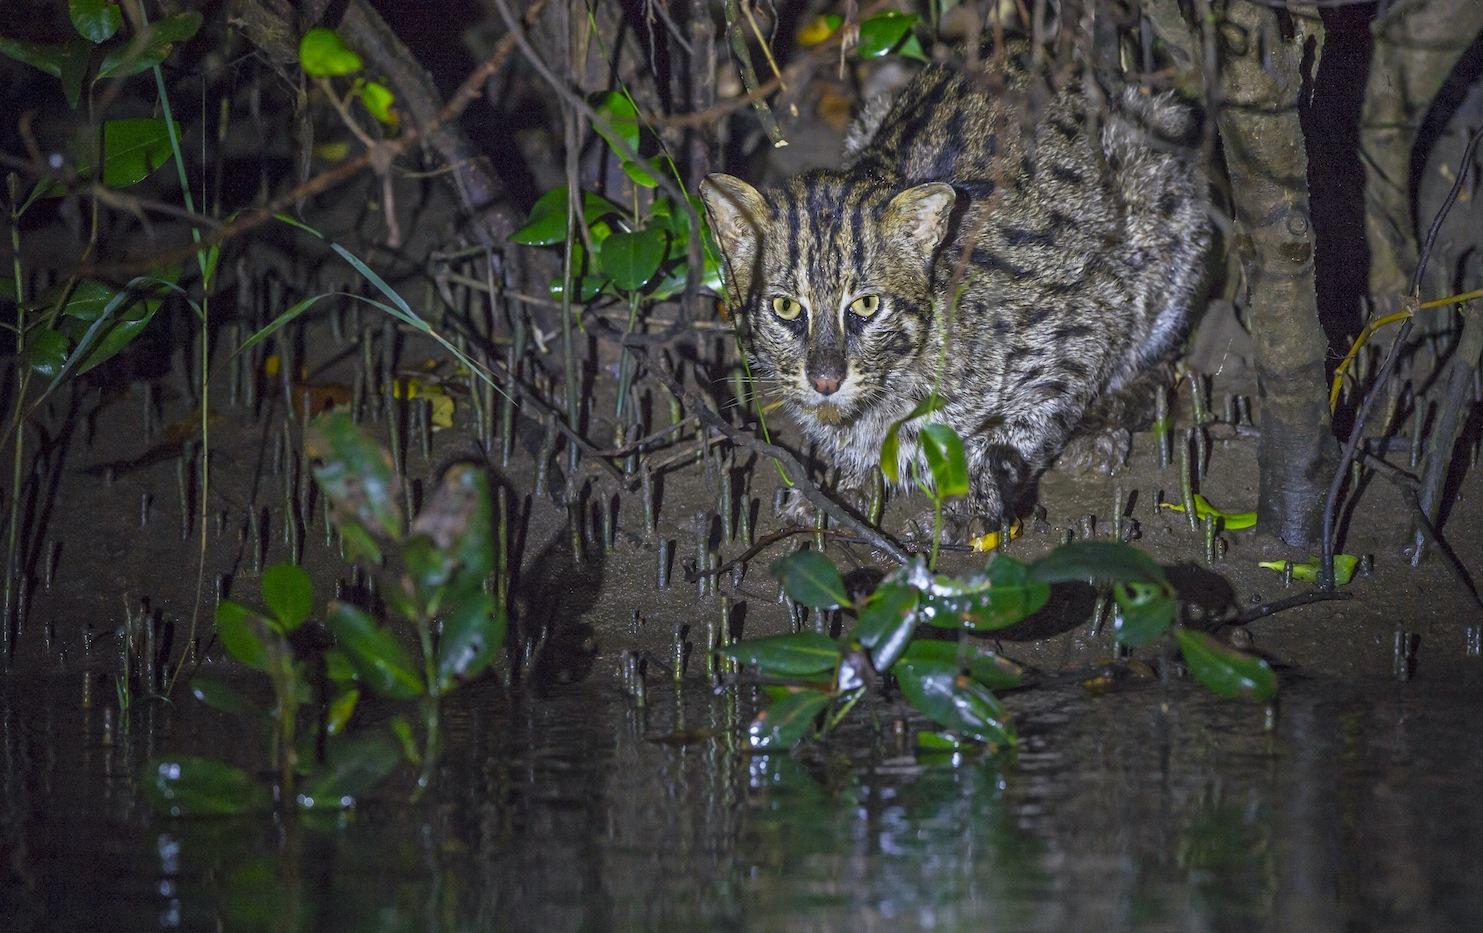 "In the coastal mangrove forests of Coringa, the movements of fishing cats ⁠— and many other species ⁠— are determined by tides, as the water levels change every six hours. During high tide, the cats can be found on branches of trees or curled up on raised land. When the tide recedes, they seek out shallow pools of water to hunt for fish. ""I have seen lots of nocturnal activity among fishing cats,"" says Mannepuri. ""But I also have hundreds of examples of day activity in camera traps."" Photo: Dhritiman Mukherjee  Cover Photo: Fishing cats belong to the genus Prionailurus, which includes three other species of small wild cats — leopard cat, rusty spotted cat, flat-headed cat — all from Asia. The fishing cat is the state animal of West Bengal, where it is called mach bhagrol. Cover Photo: Anjani Kumar"